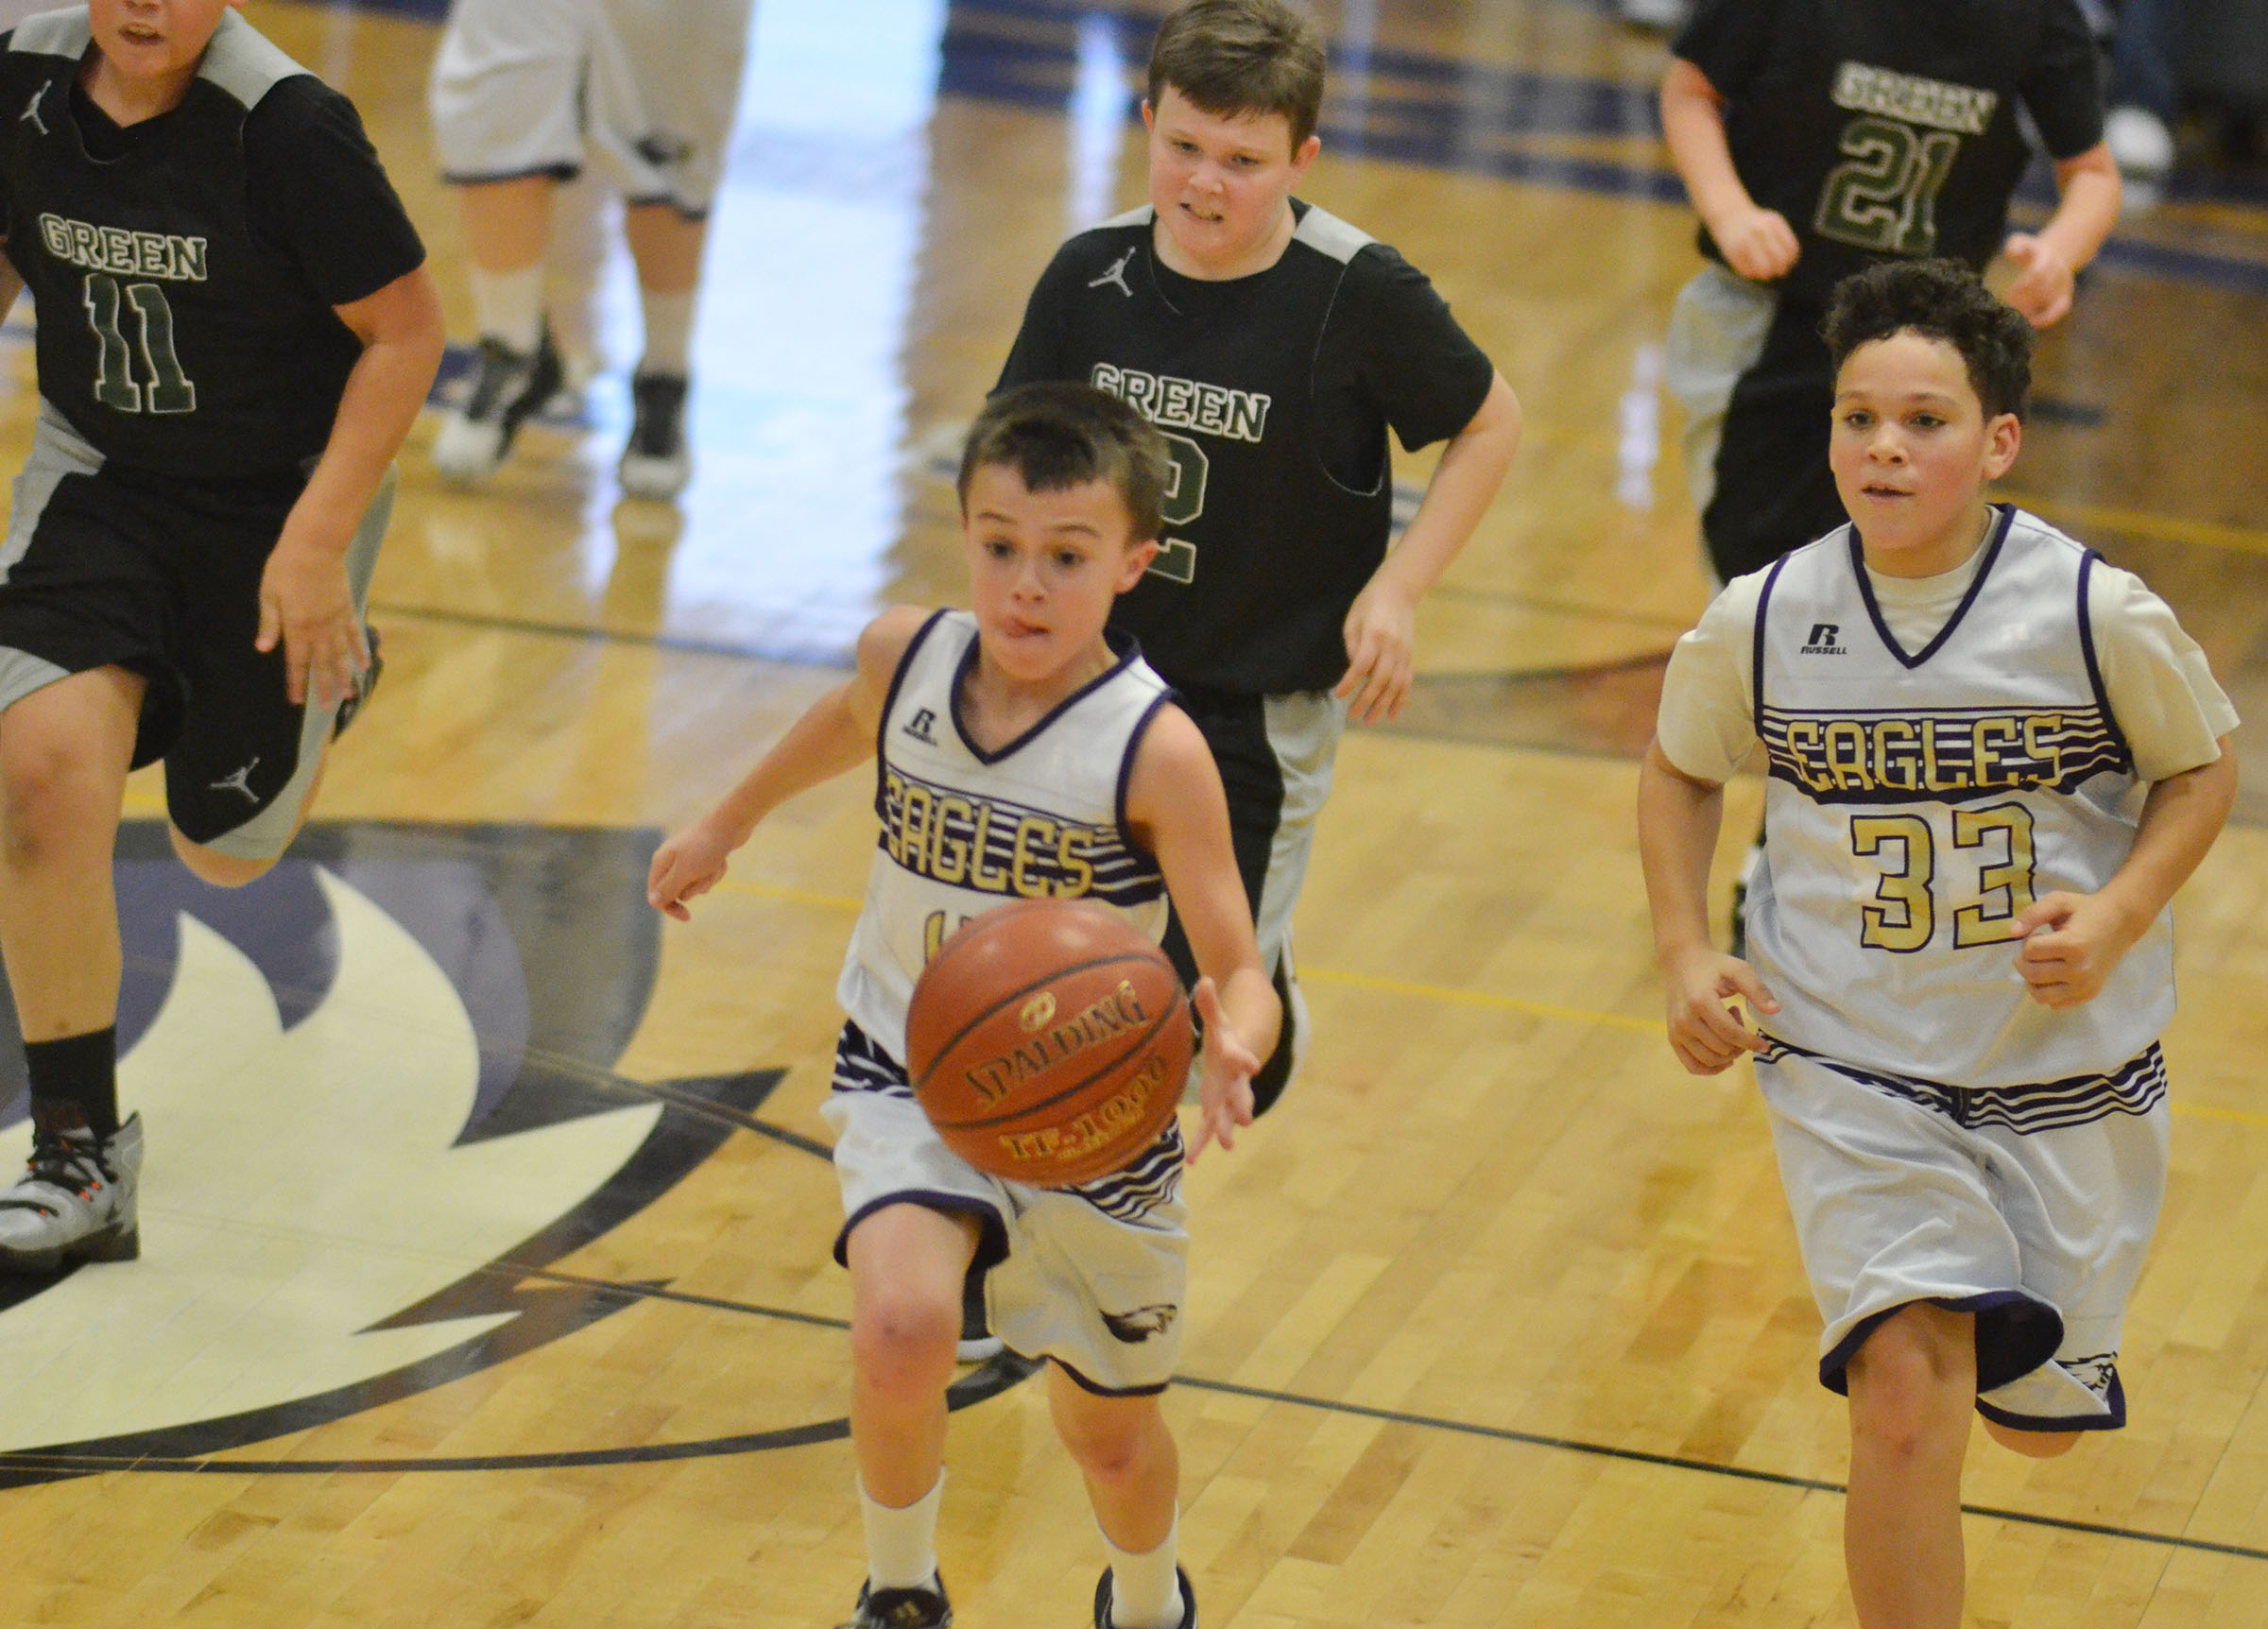 CMS sixth-graders Chase Hord, at left, and Kaydon Taylor run to the basket.